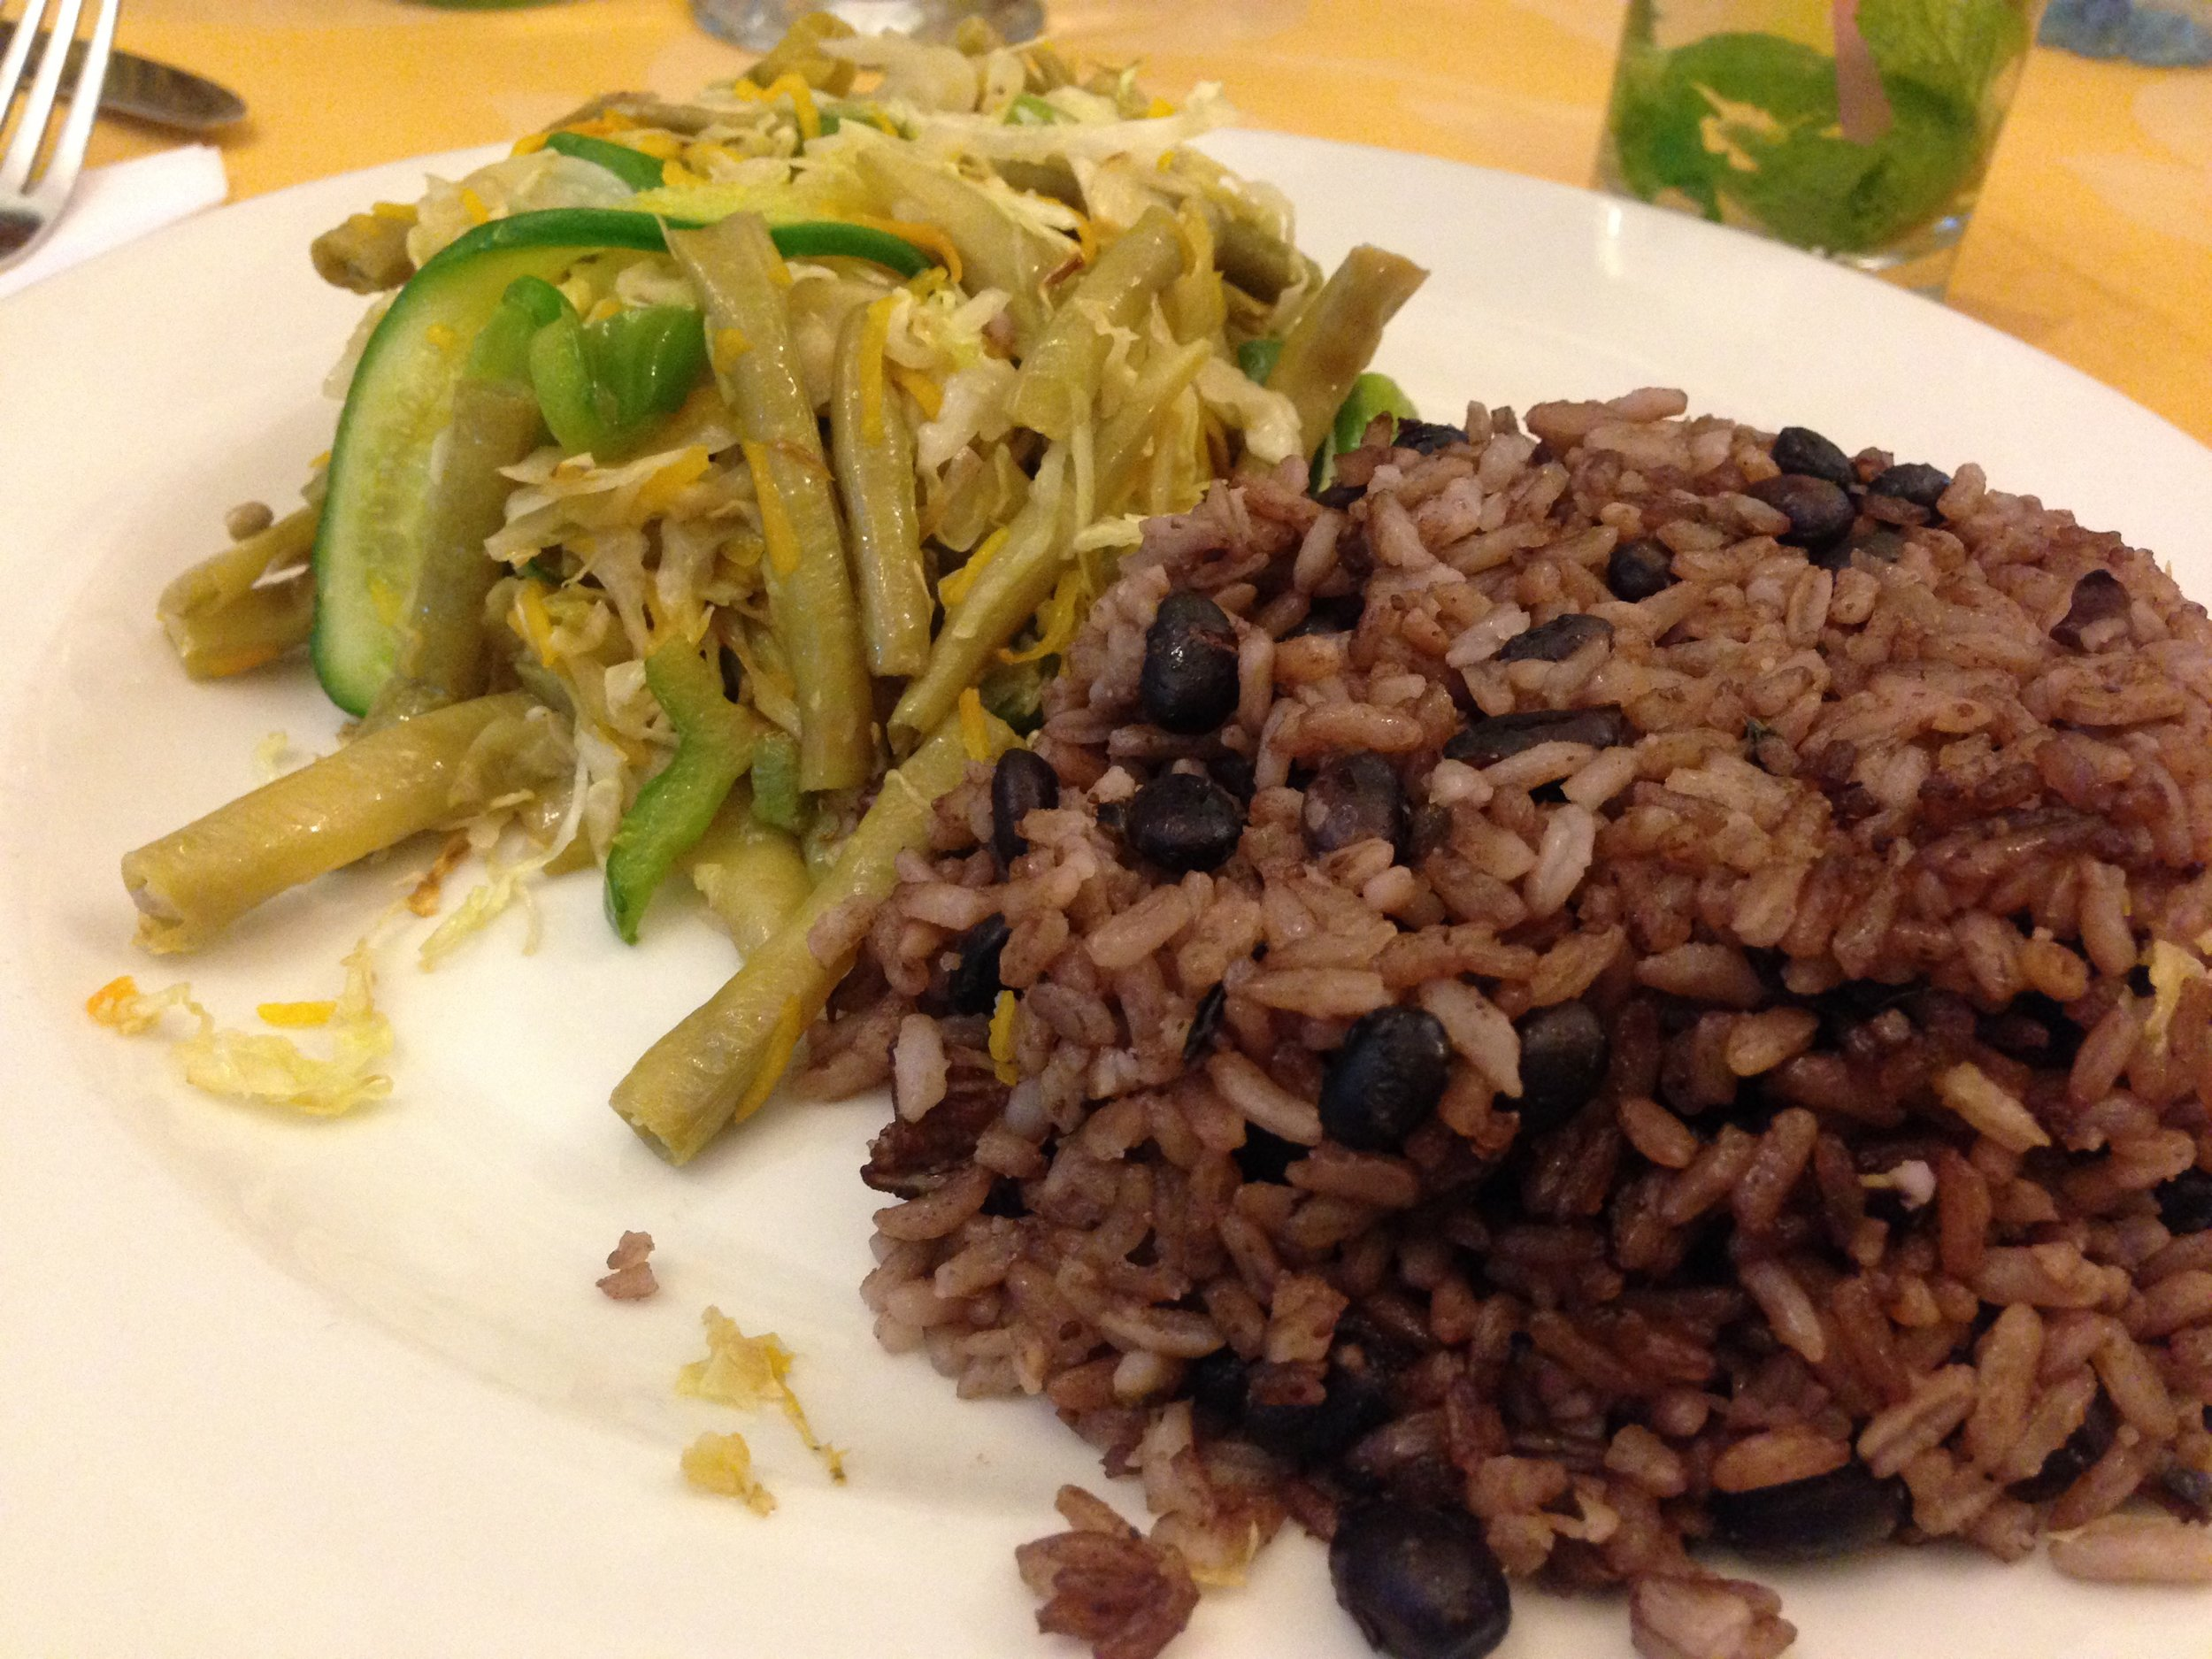 food in cuba - arroz con frijoles black beans with rice